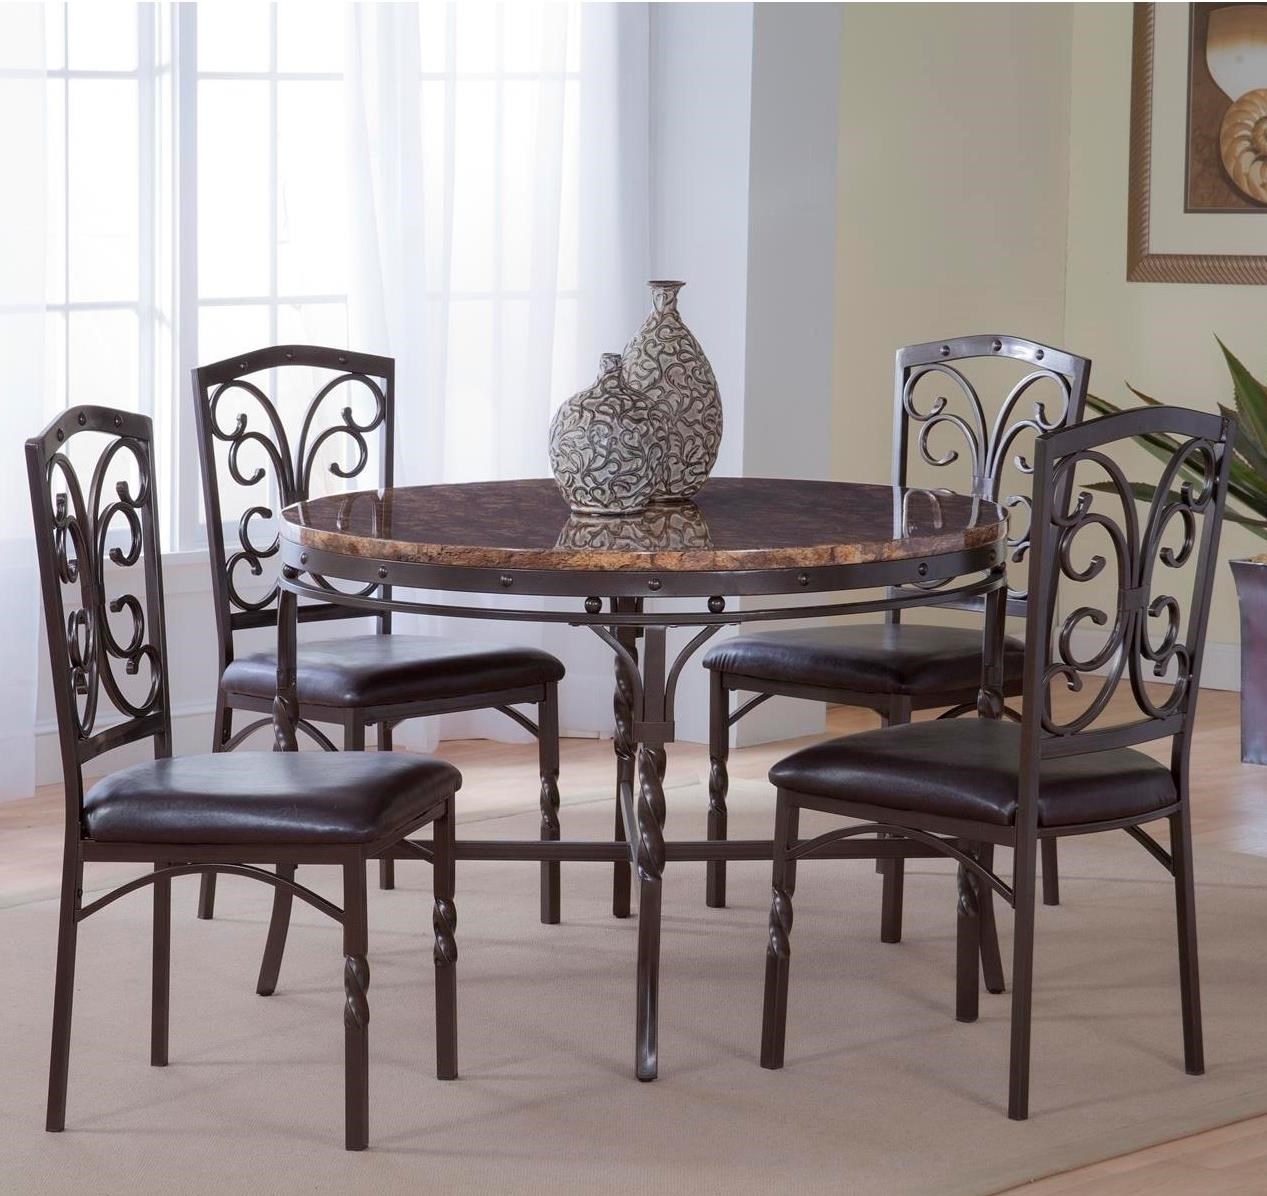 Bernards Tuscan 5 Piece Metalfaux Marble Dinette Table Set Royal